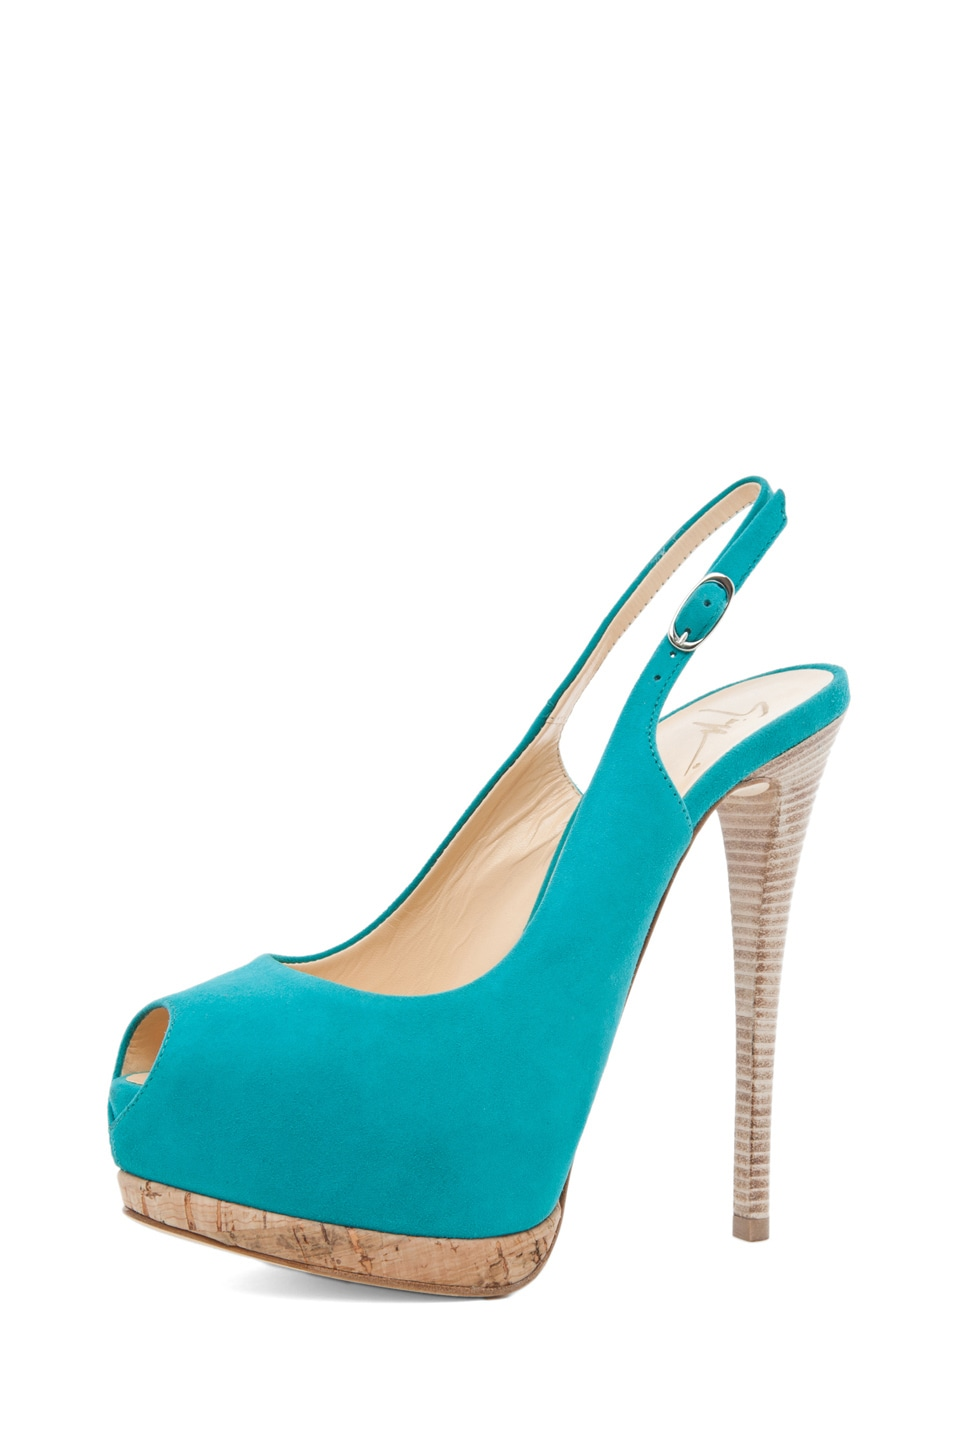 Image 2 of Giuseppe Zanotti Sling Back Cork Pump in Turquoise